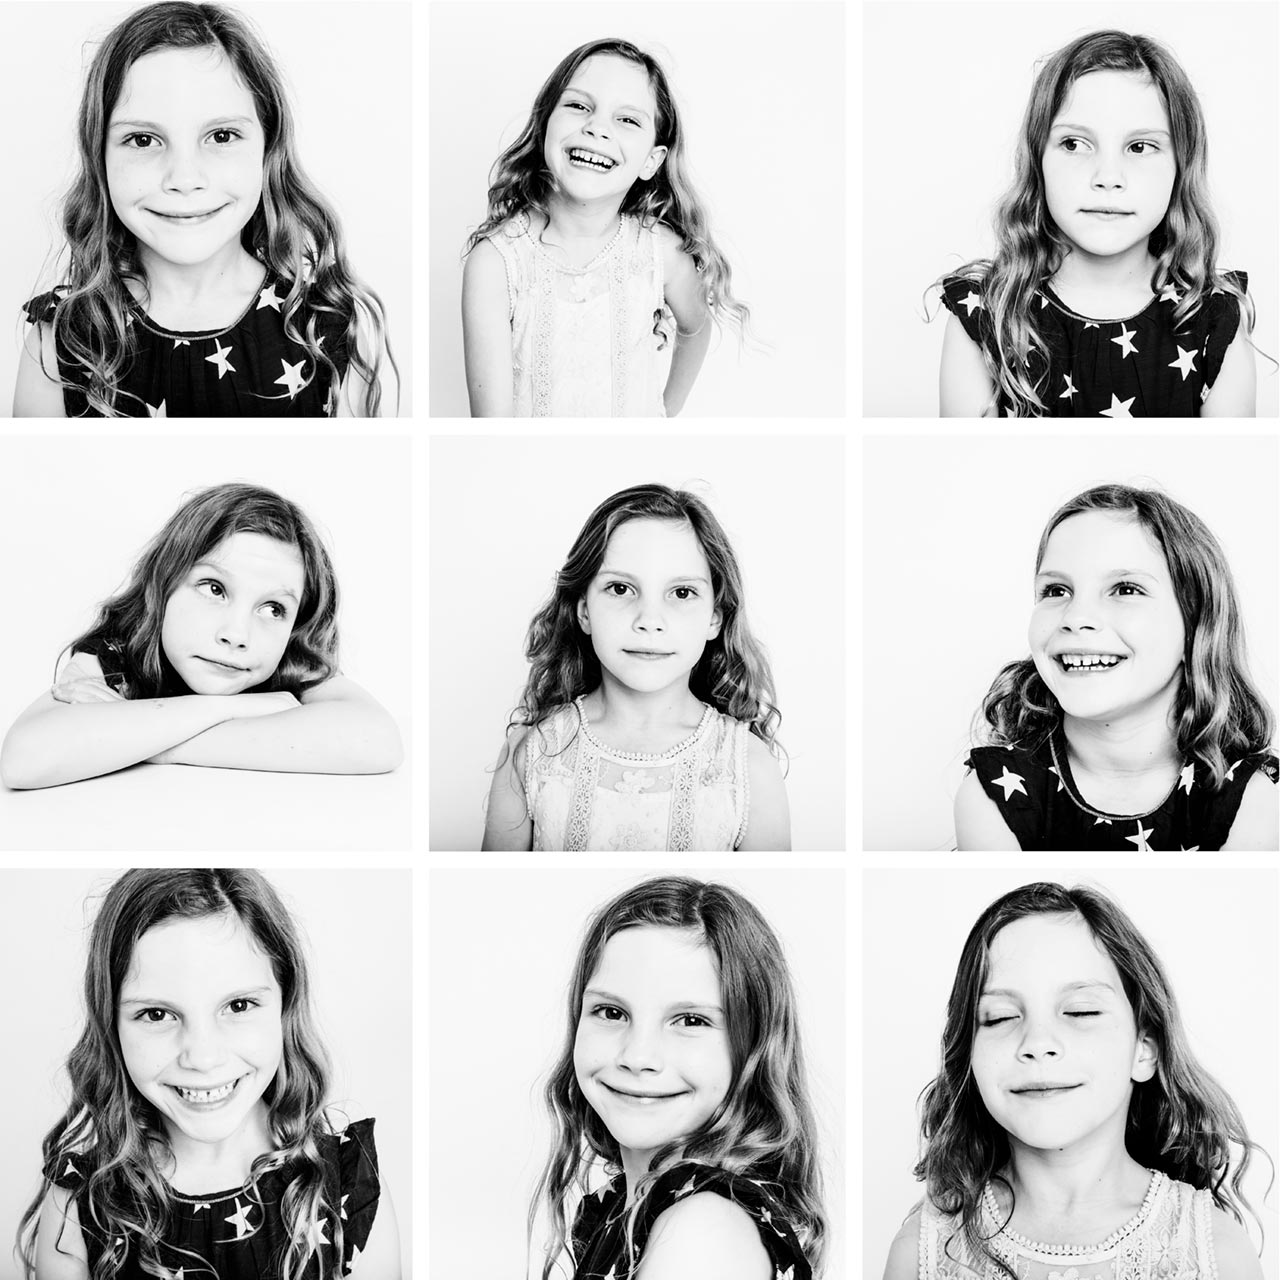 Studio black and white portraits collage